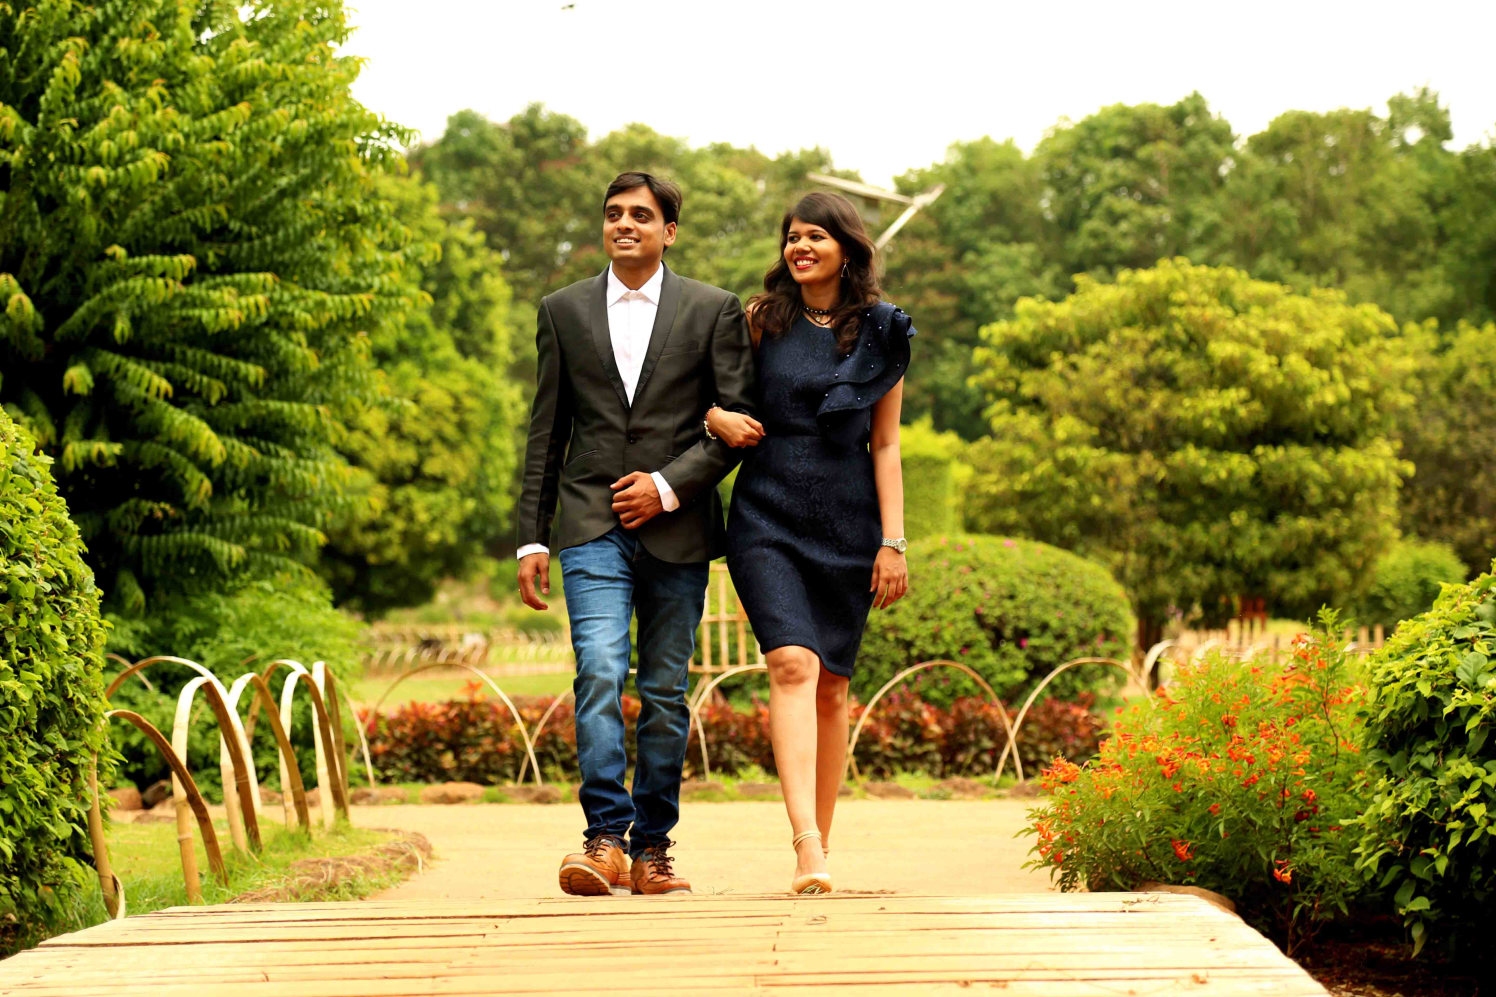 Candid Click of Bride and Groom To-Be Against Picturesque Garden Backdrop by Rushil Jadhav Wedding-photography | Weddings Photos & Ideas